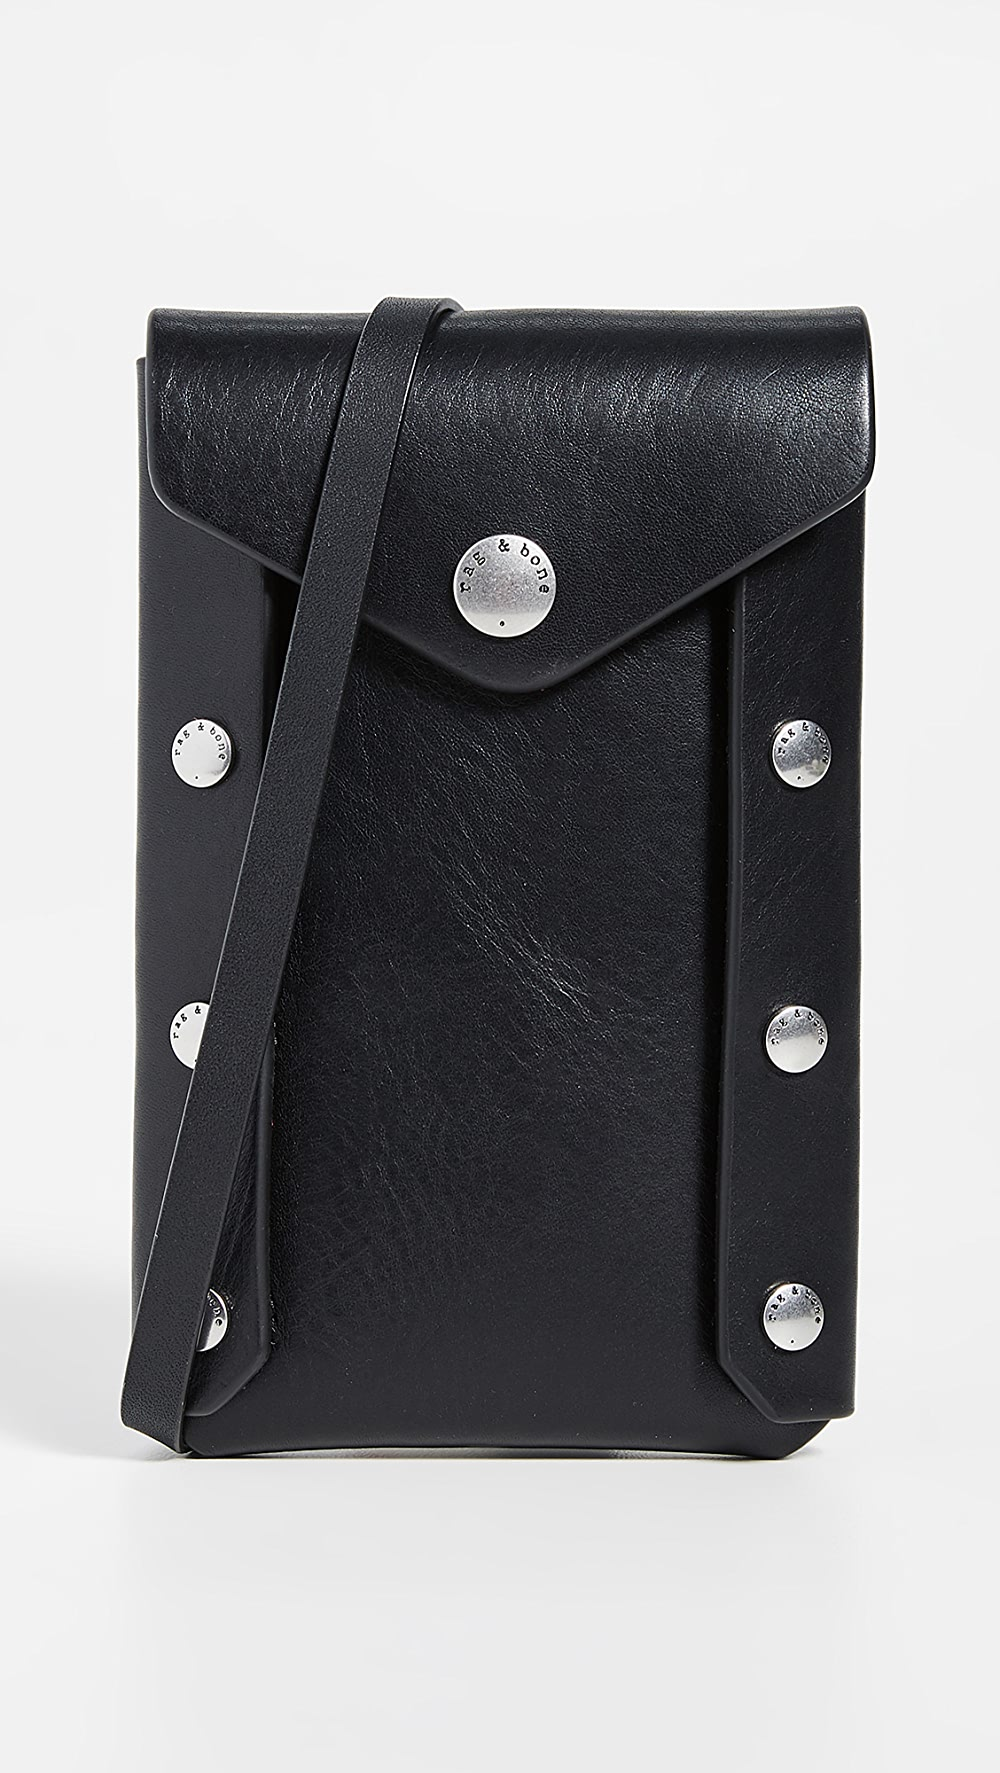 Disciplined Rag & Bone - Atlas Phone Pouch To Rank First Among Similar Products